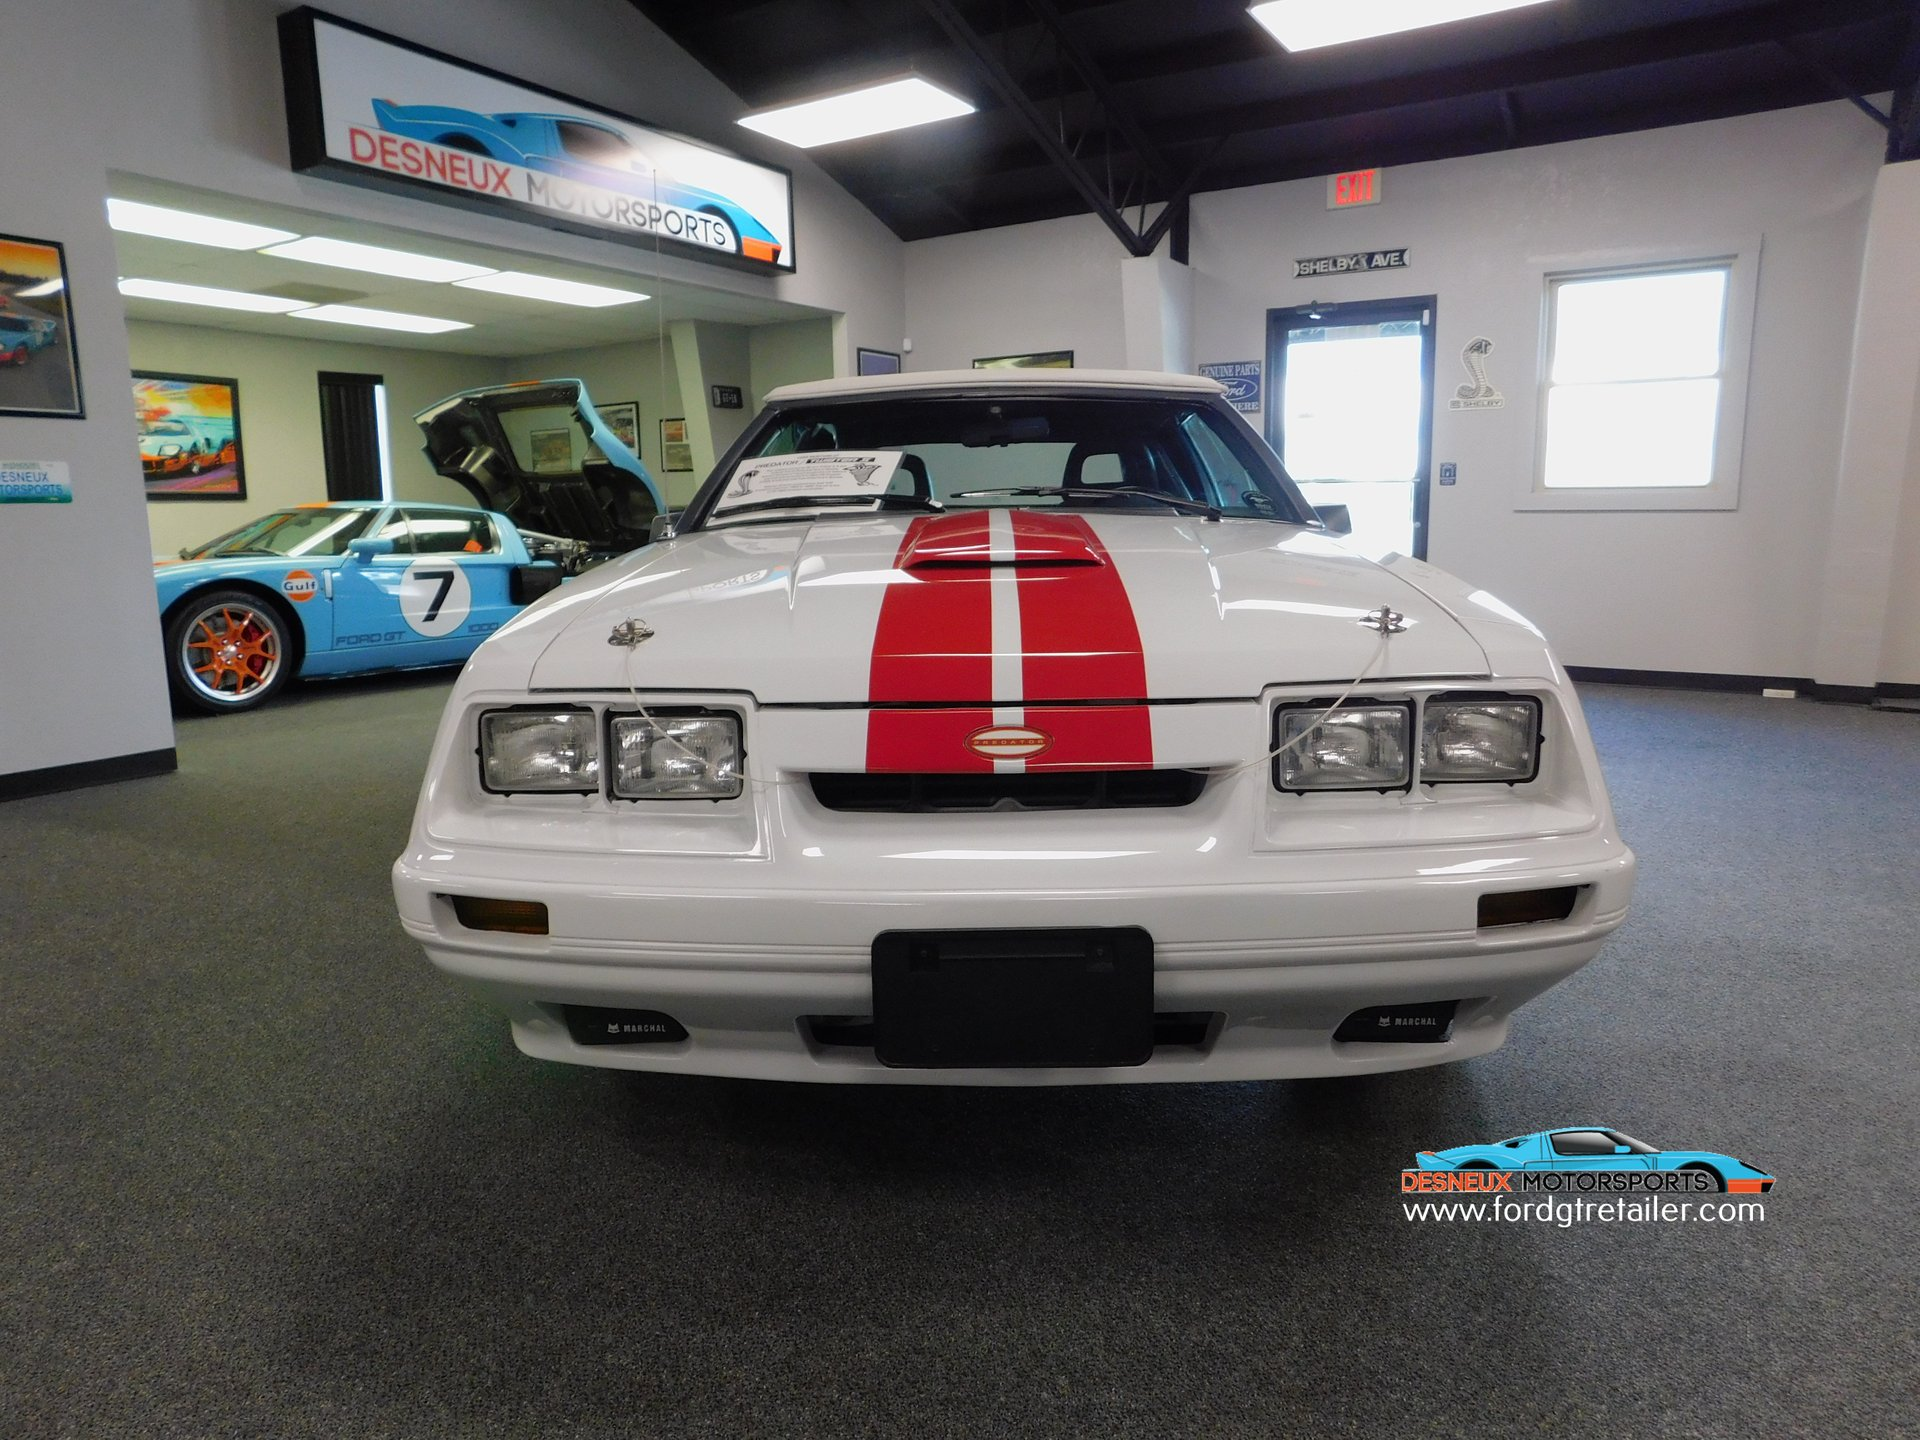 1985 Ford Mustang Predator Convertible for sale #98768 | MCG